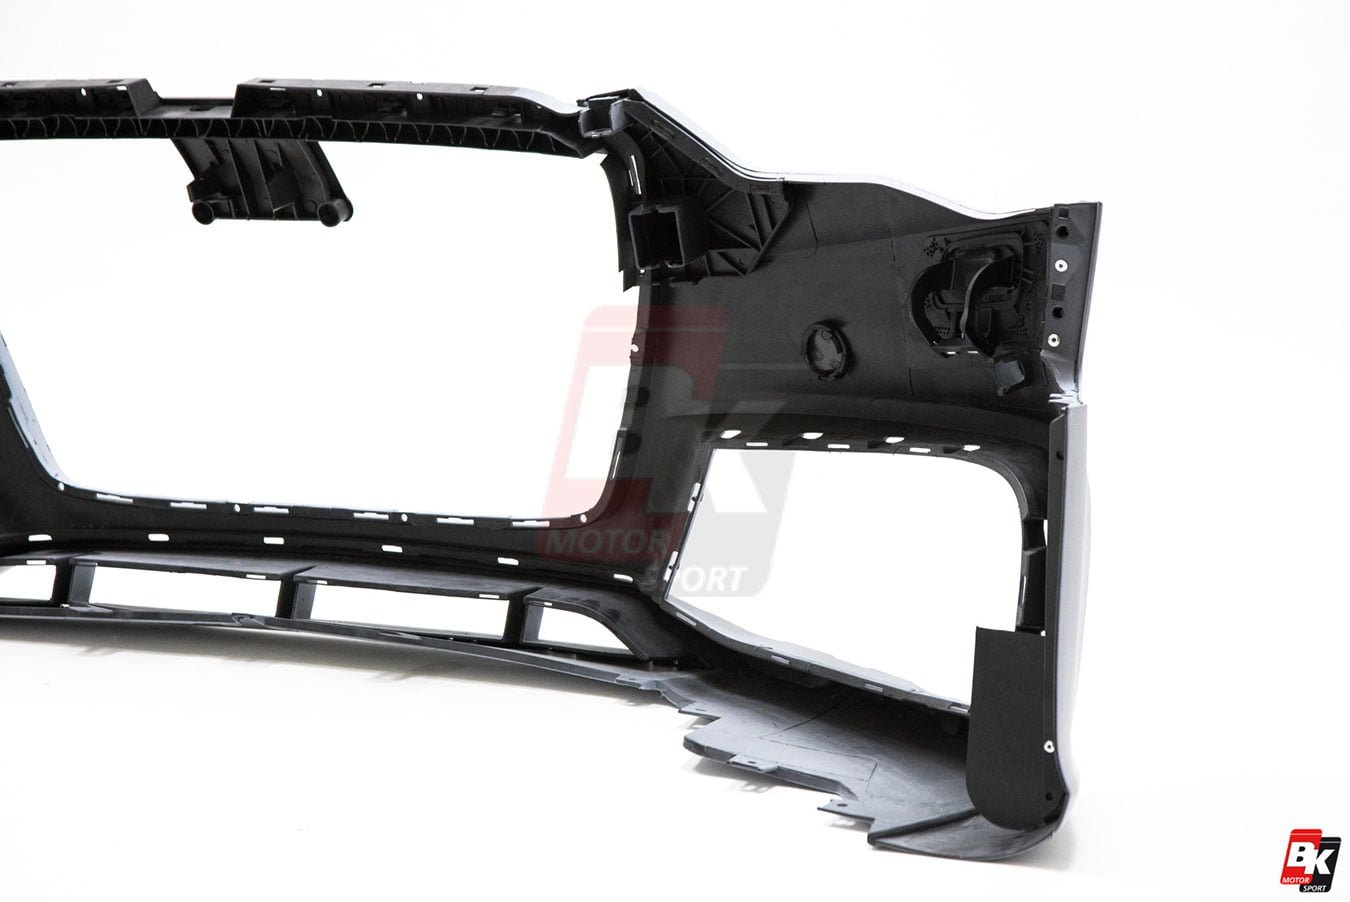 BKM Front Bumper Kit with Front Grille (RS Style), fits Audi A5/S5 B8.5